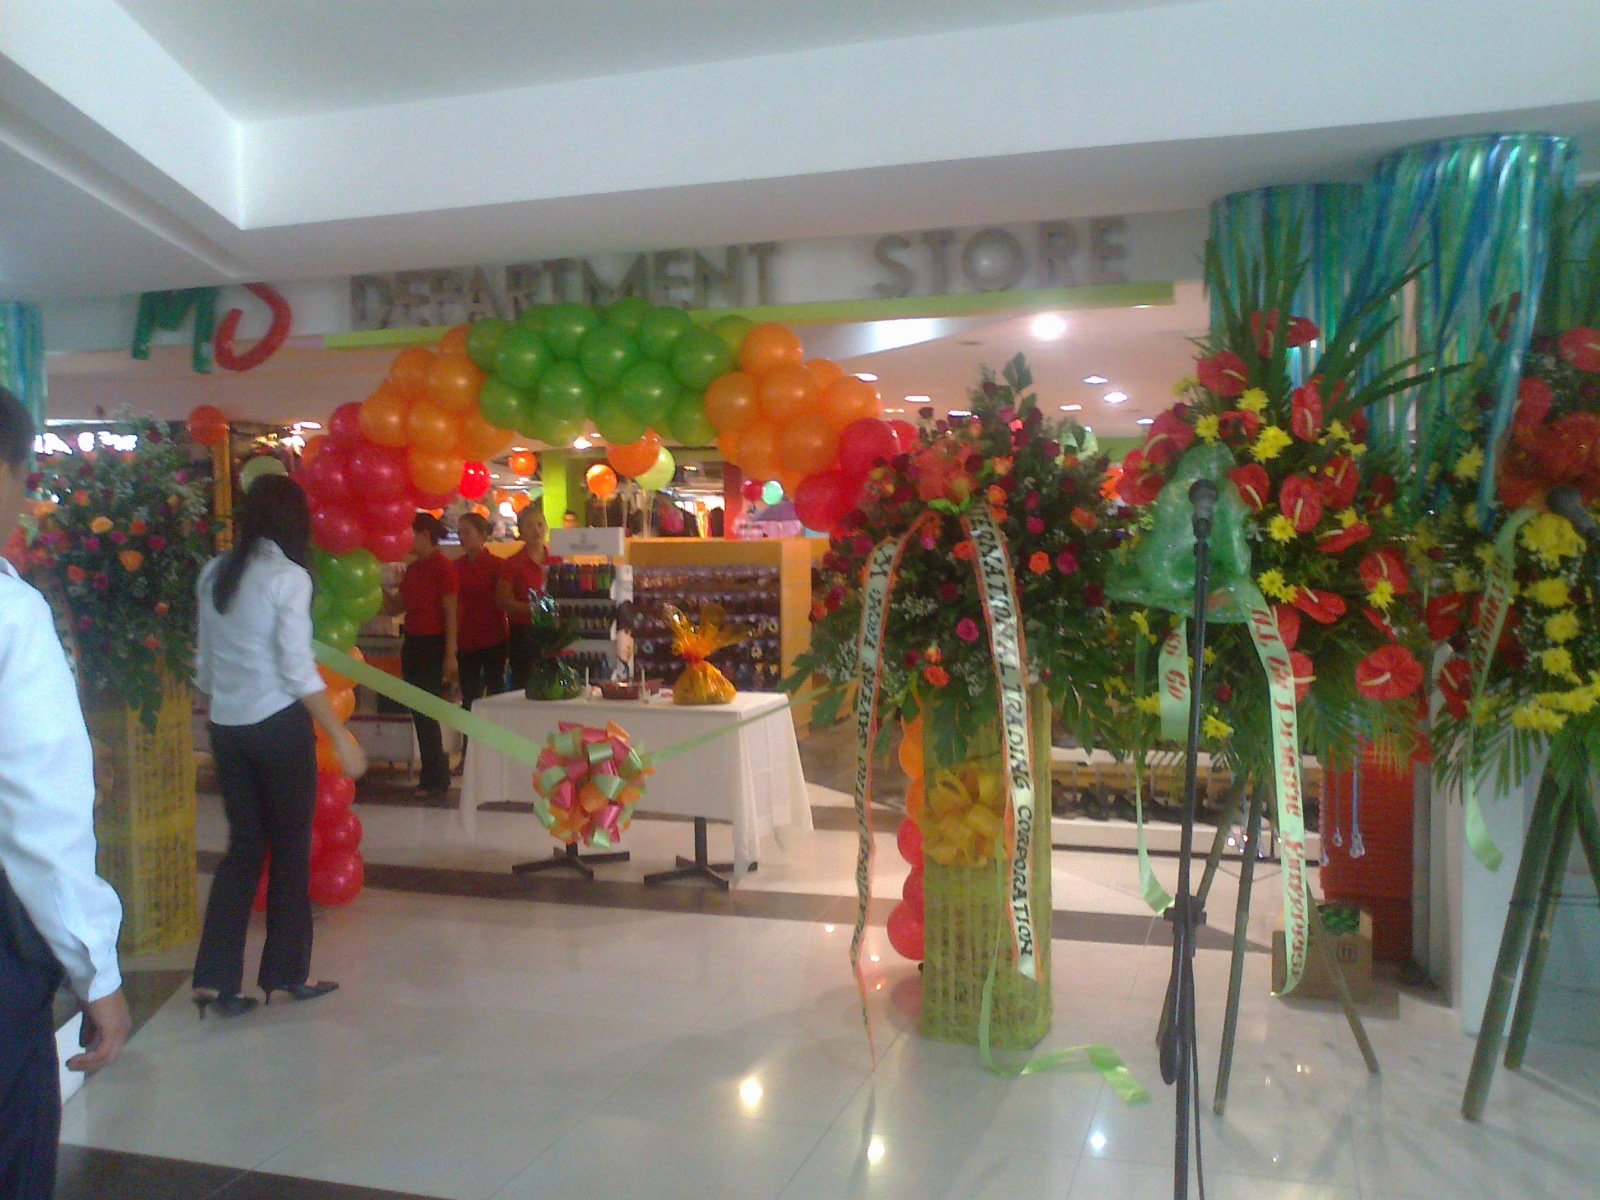 Metro Savers Department Store now open!